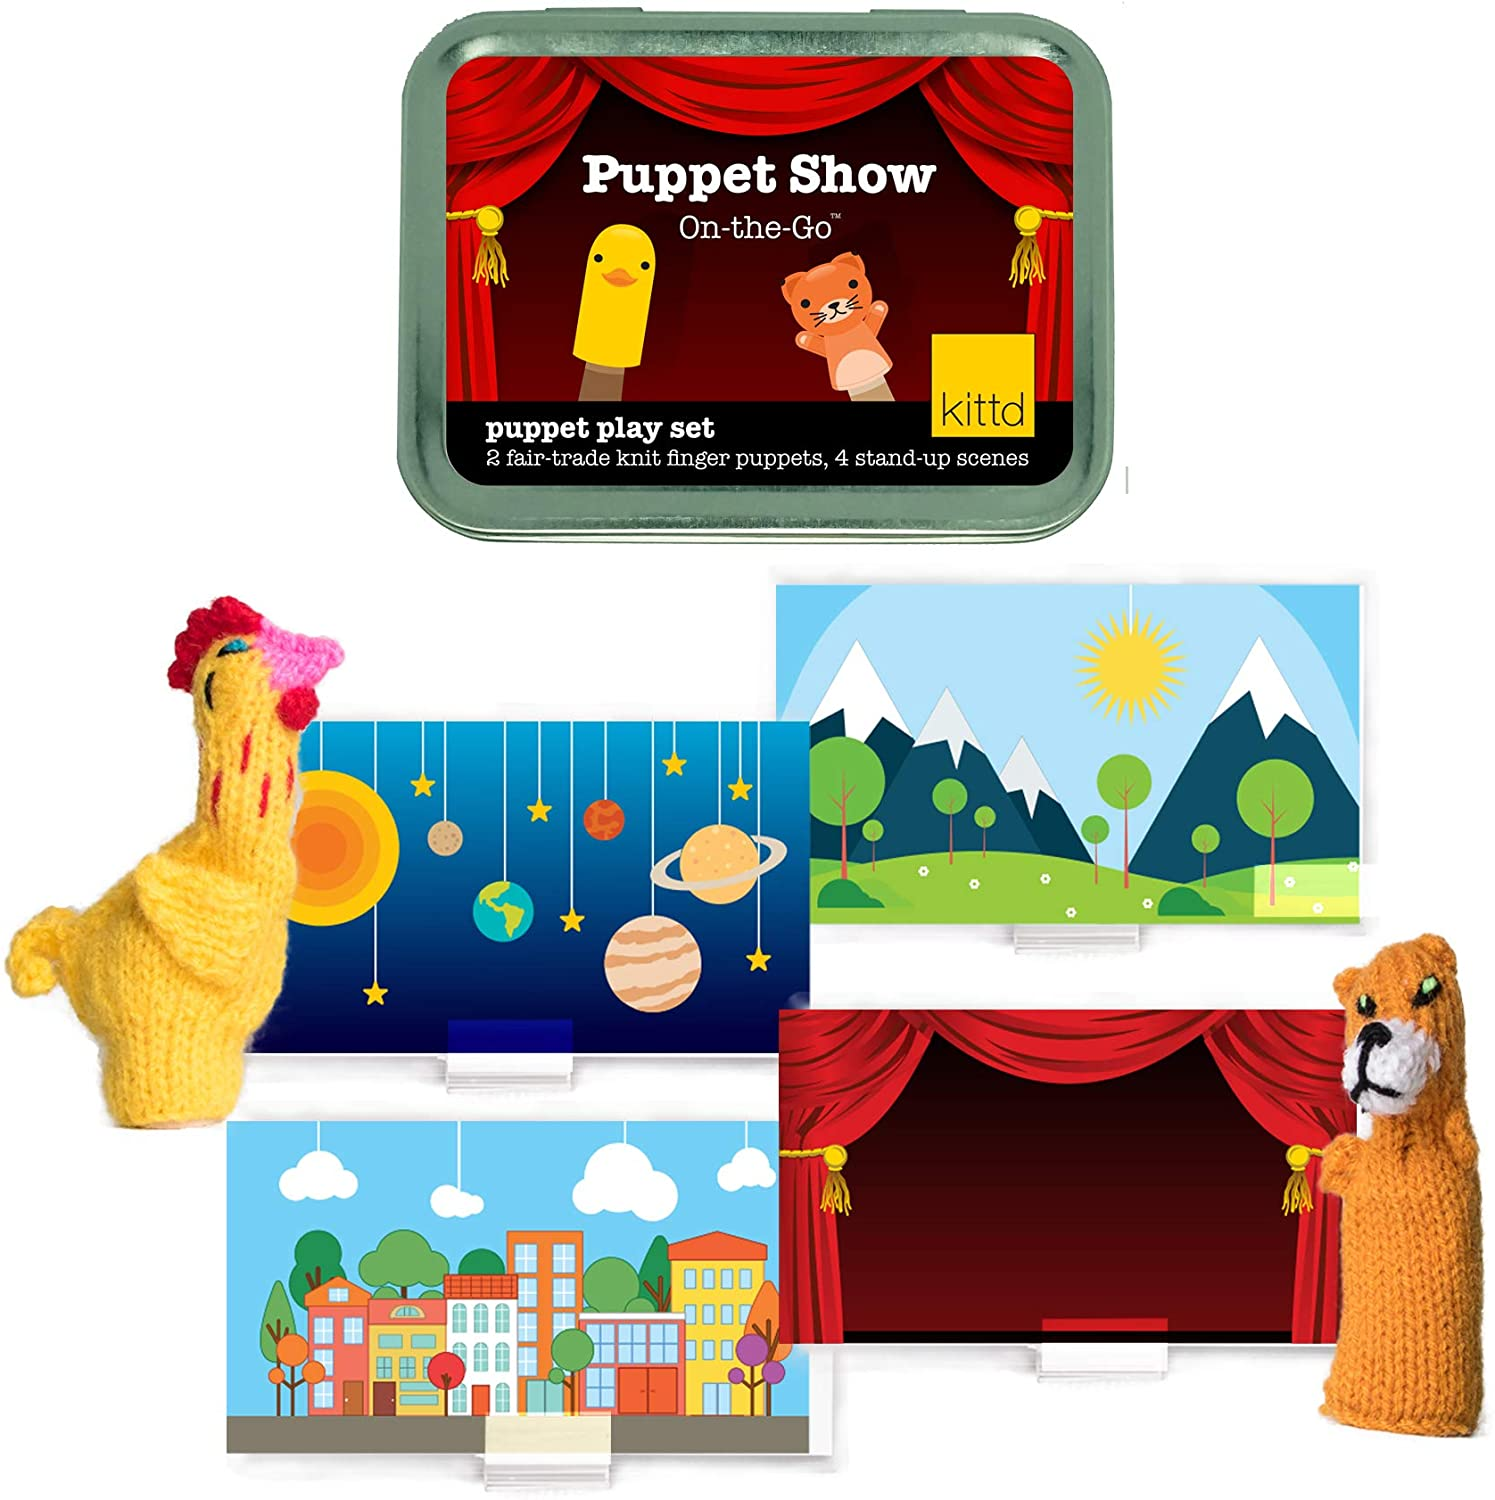 Puppet Show on the Go Play set